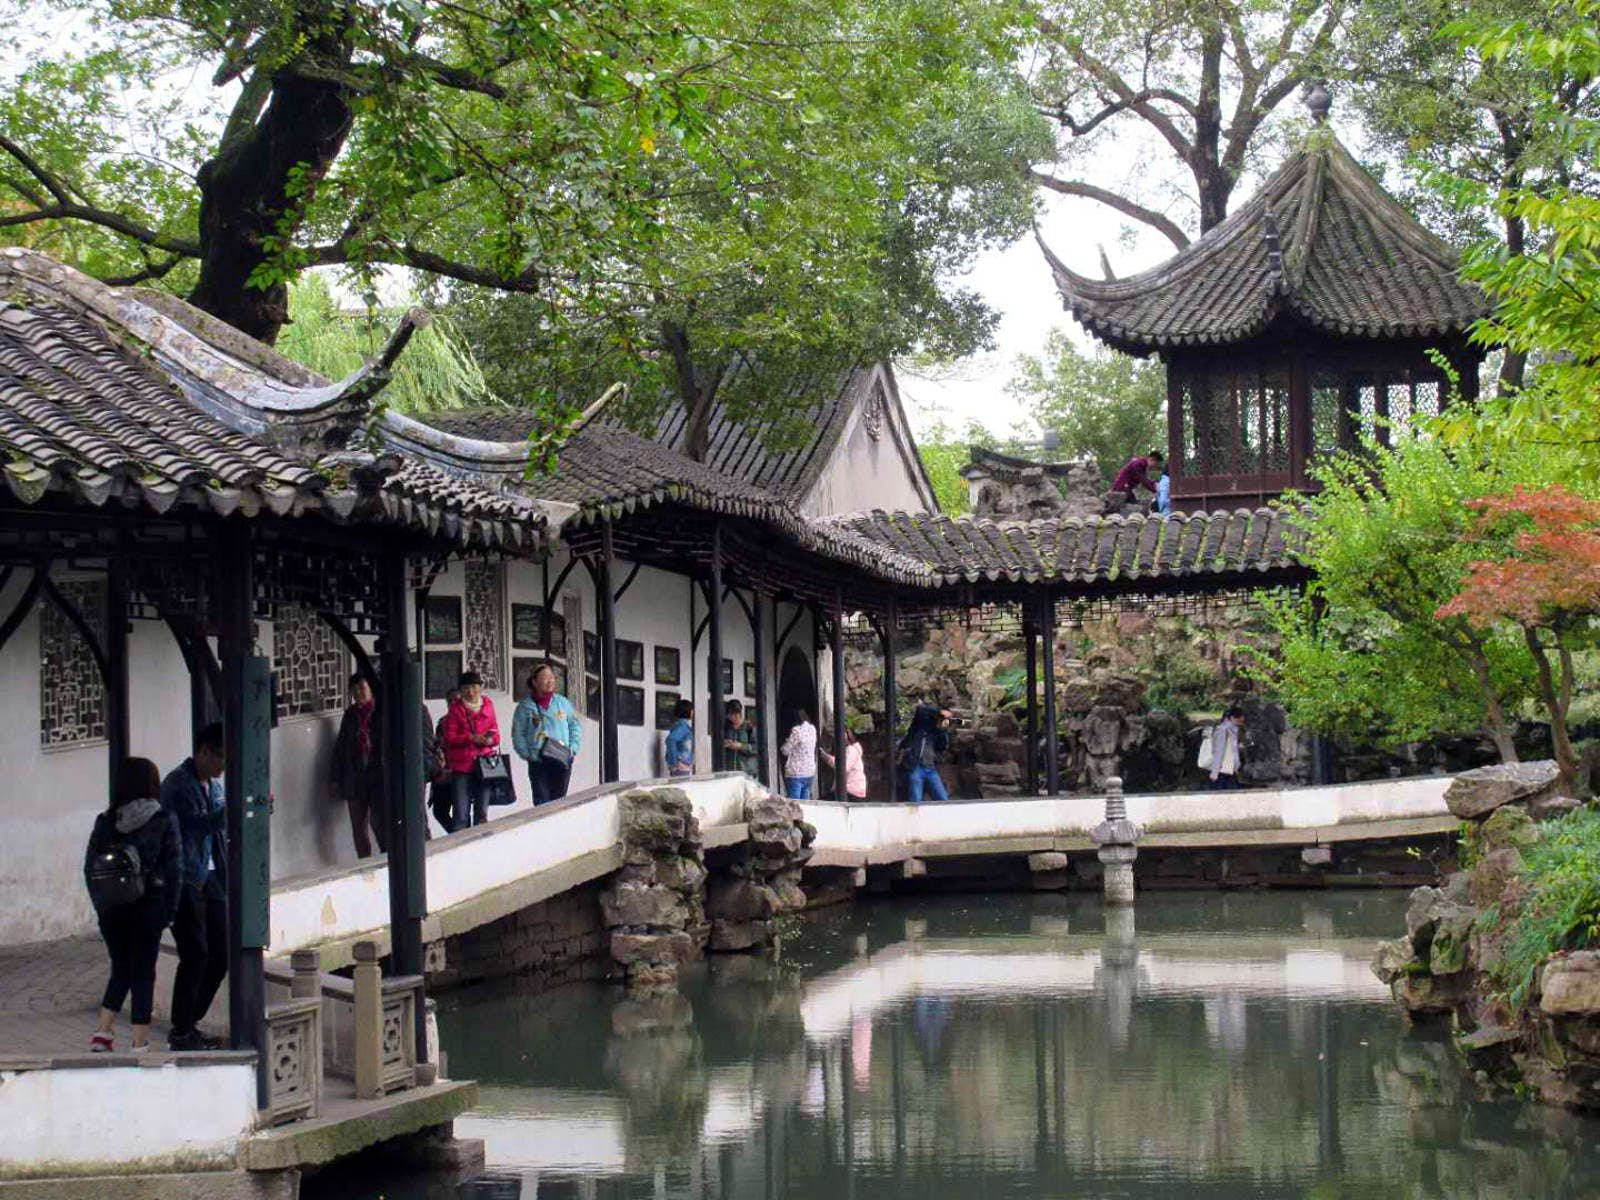 A covered walkway with upturned eaves next to a pond with Chinese pavilion in the background. Suzhou's gardens were first cultivated as private residences © Tess Humphrys / Lonely Planet